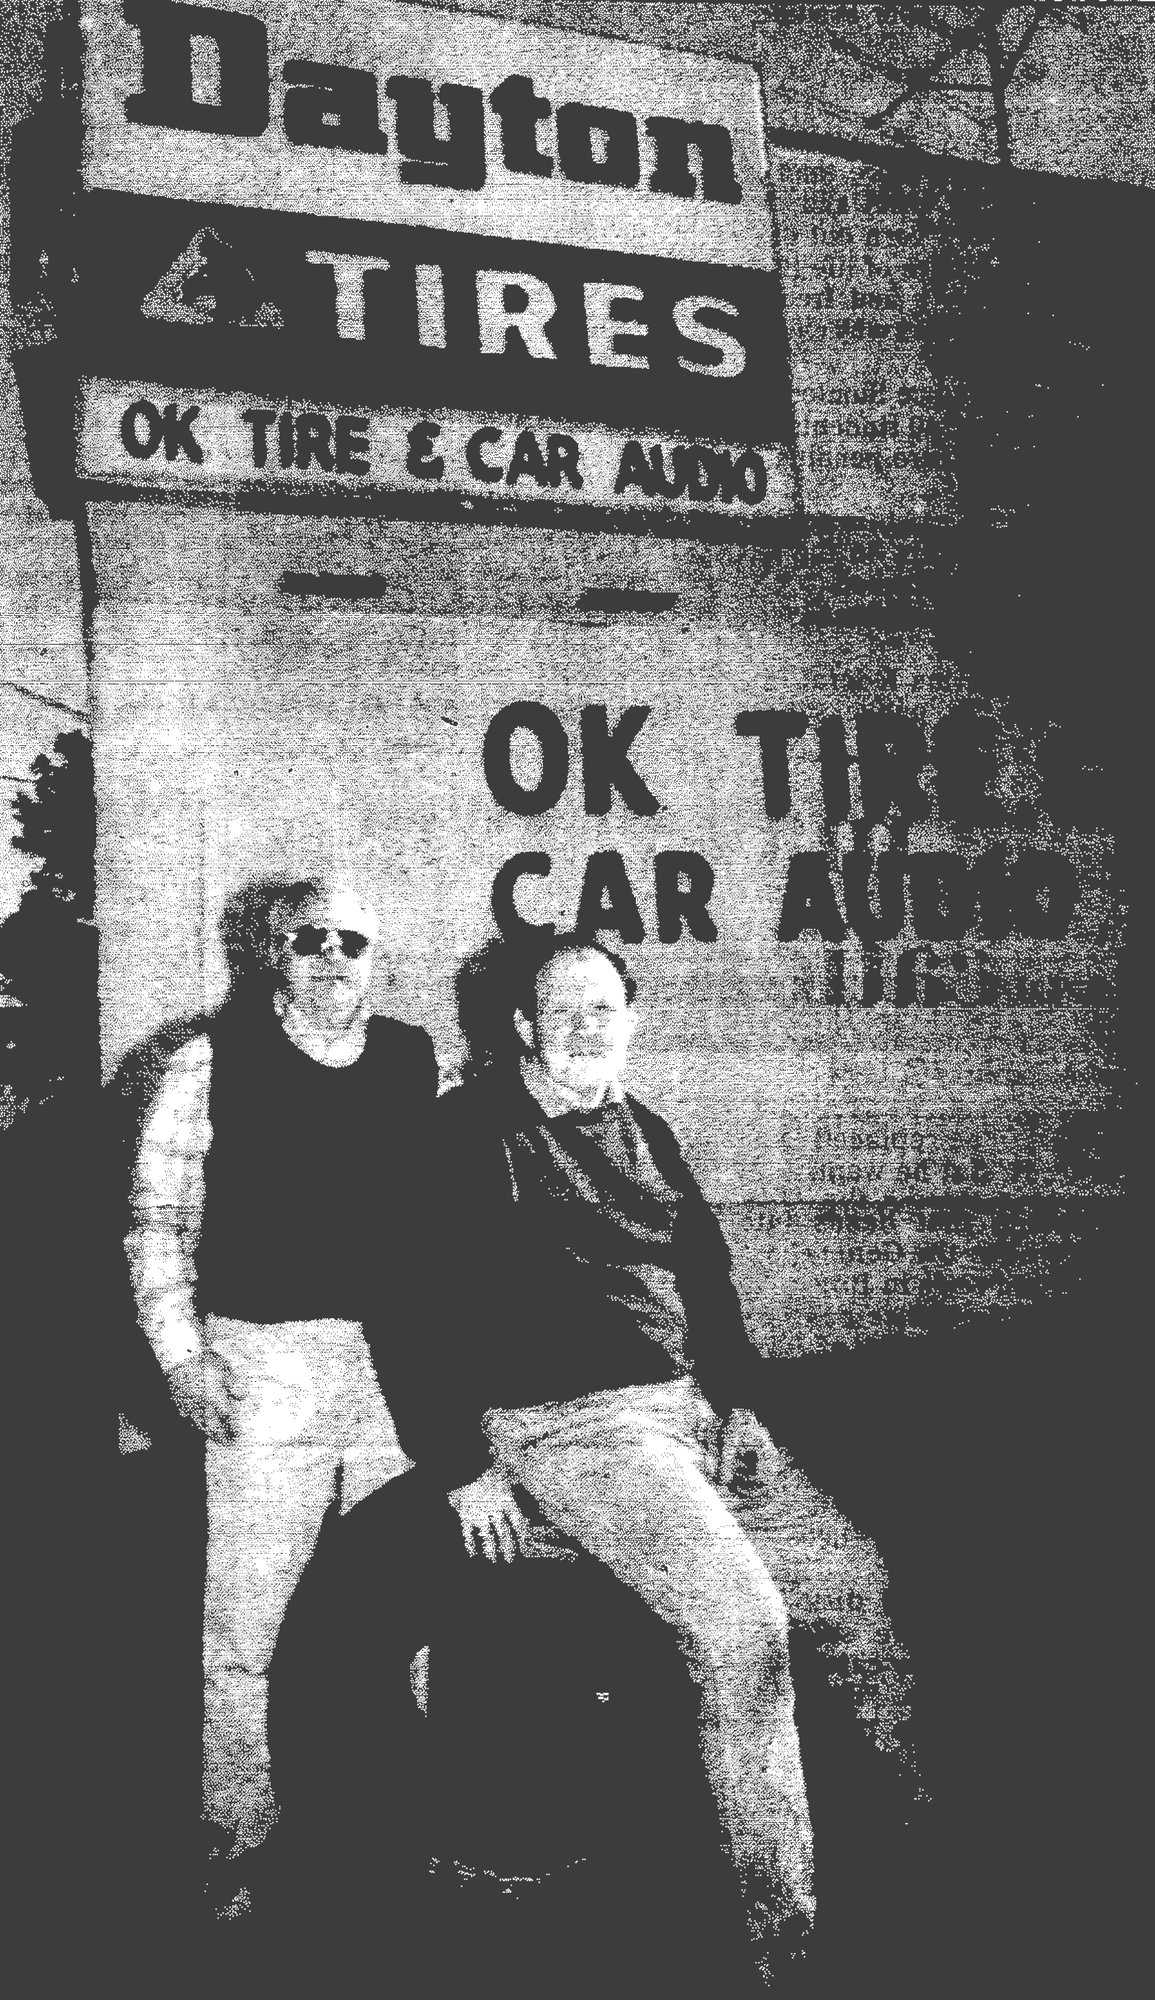 SUMTER ITEM FILE PHOTO A.D. Allbritton Jr., left, and Joe Albritton stand in front of OK Tire and Car Audio at the corner of Broad Street and Bultman Drive. The Allbrittons' father, A.D. Allbritton Sr., founded the company in 1958.